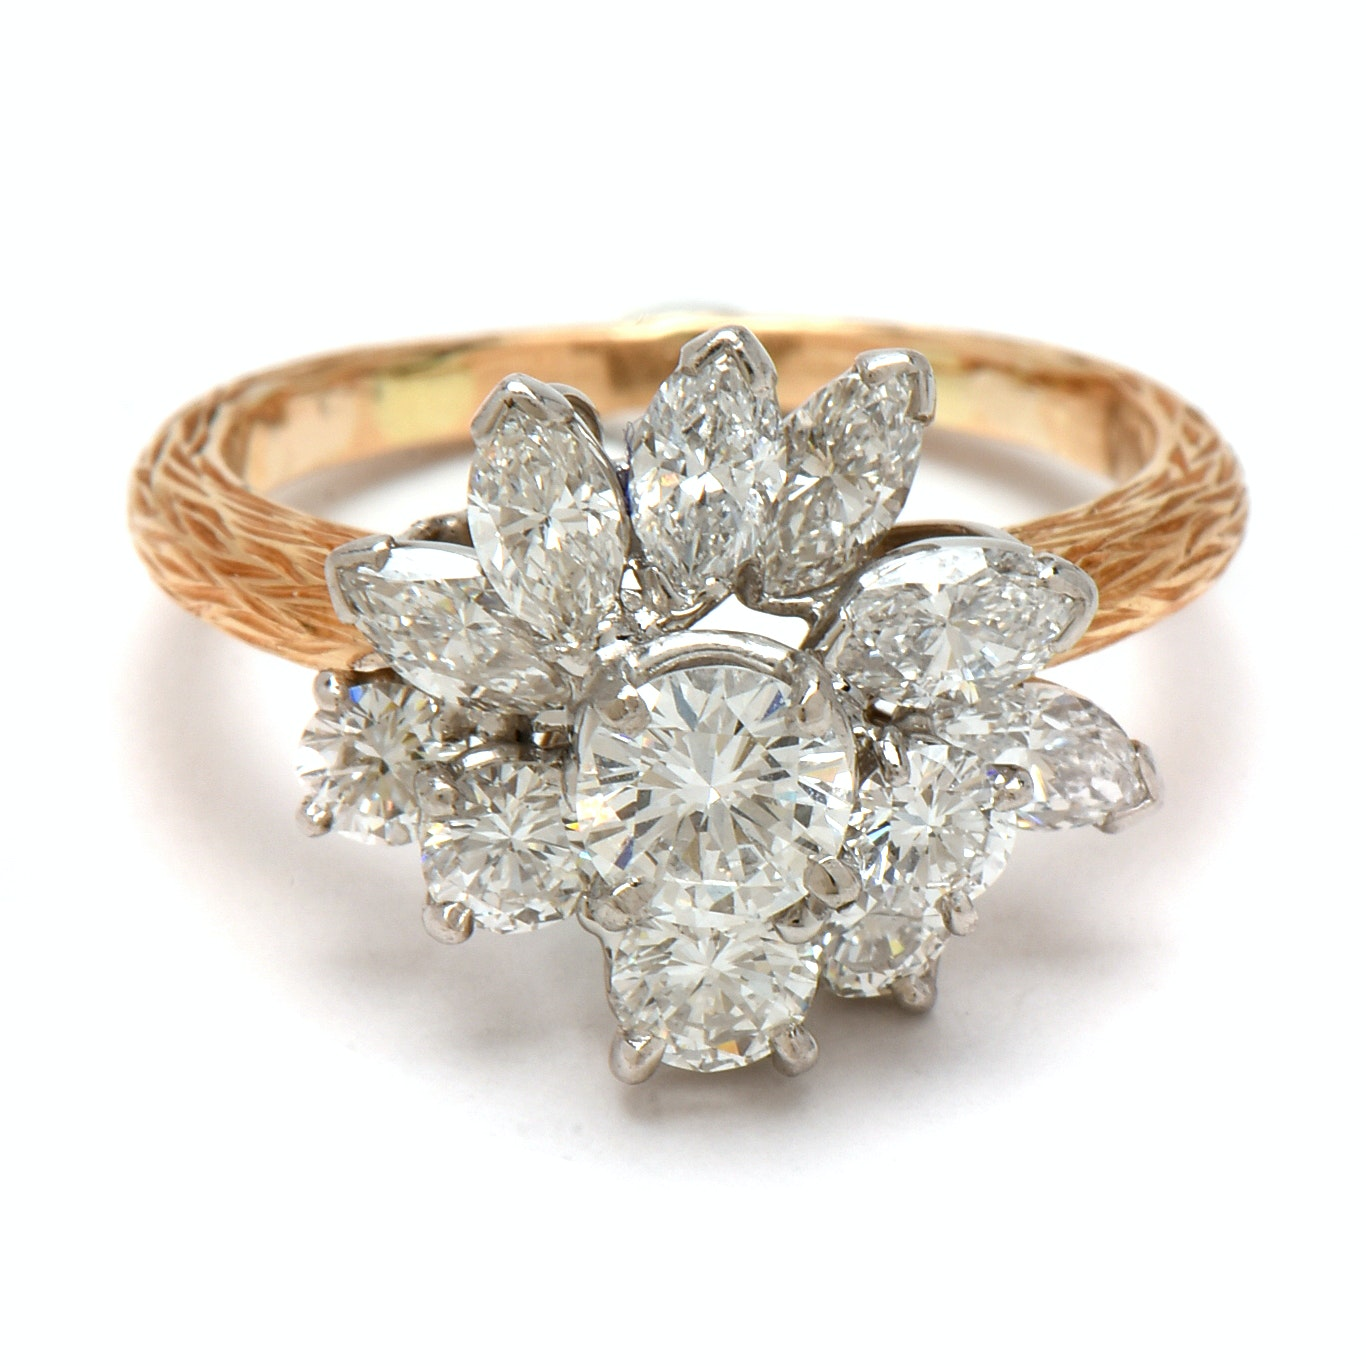 Oscar Heyman & Bros 18K Yellow Gold with Platinum 2.26 CTW Diamond Ring